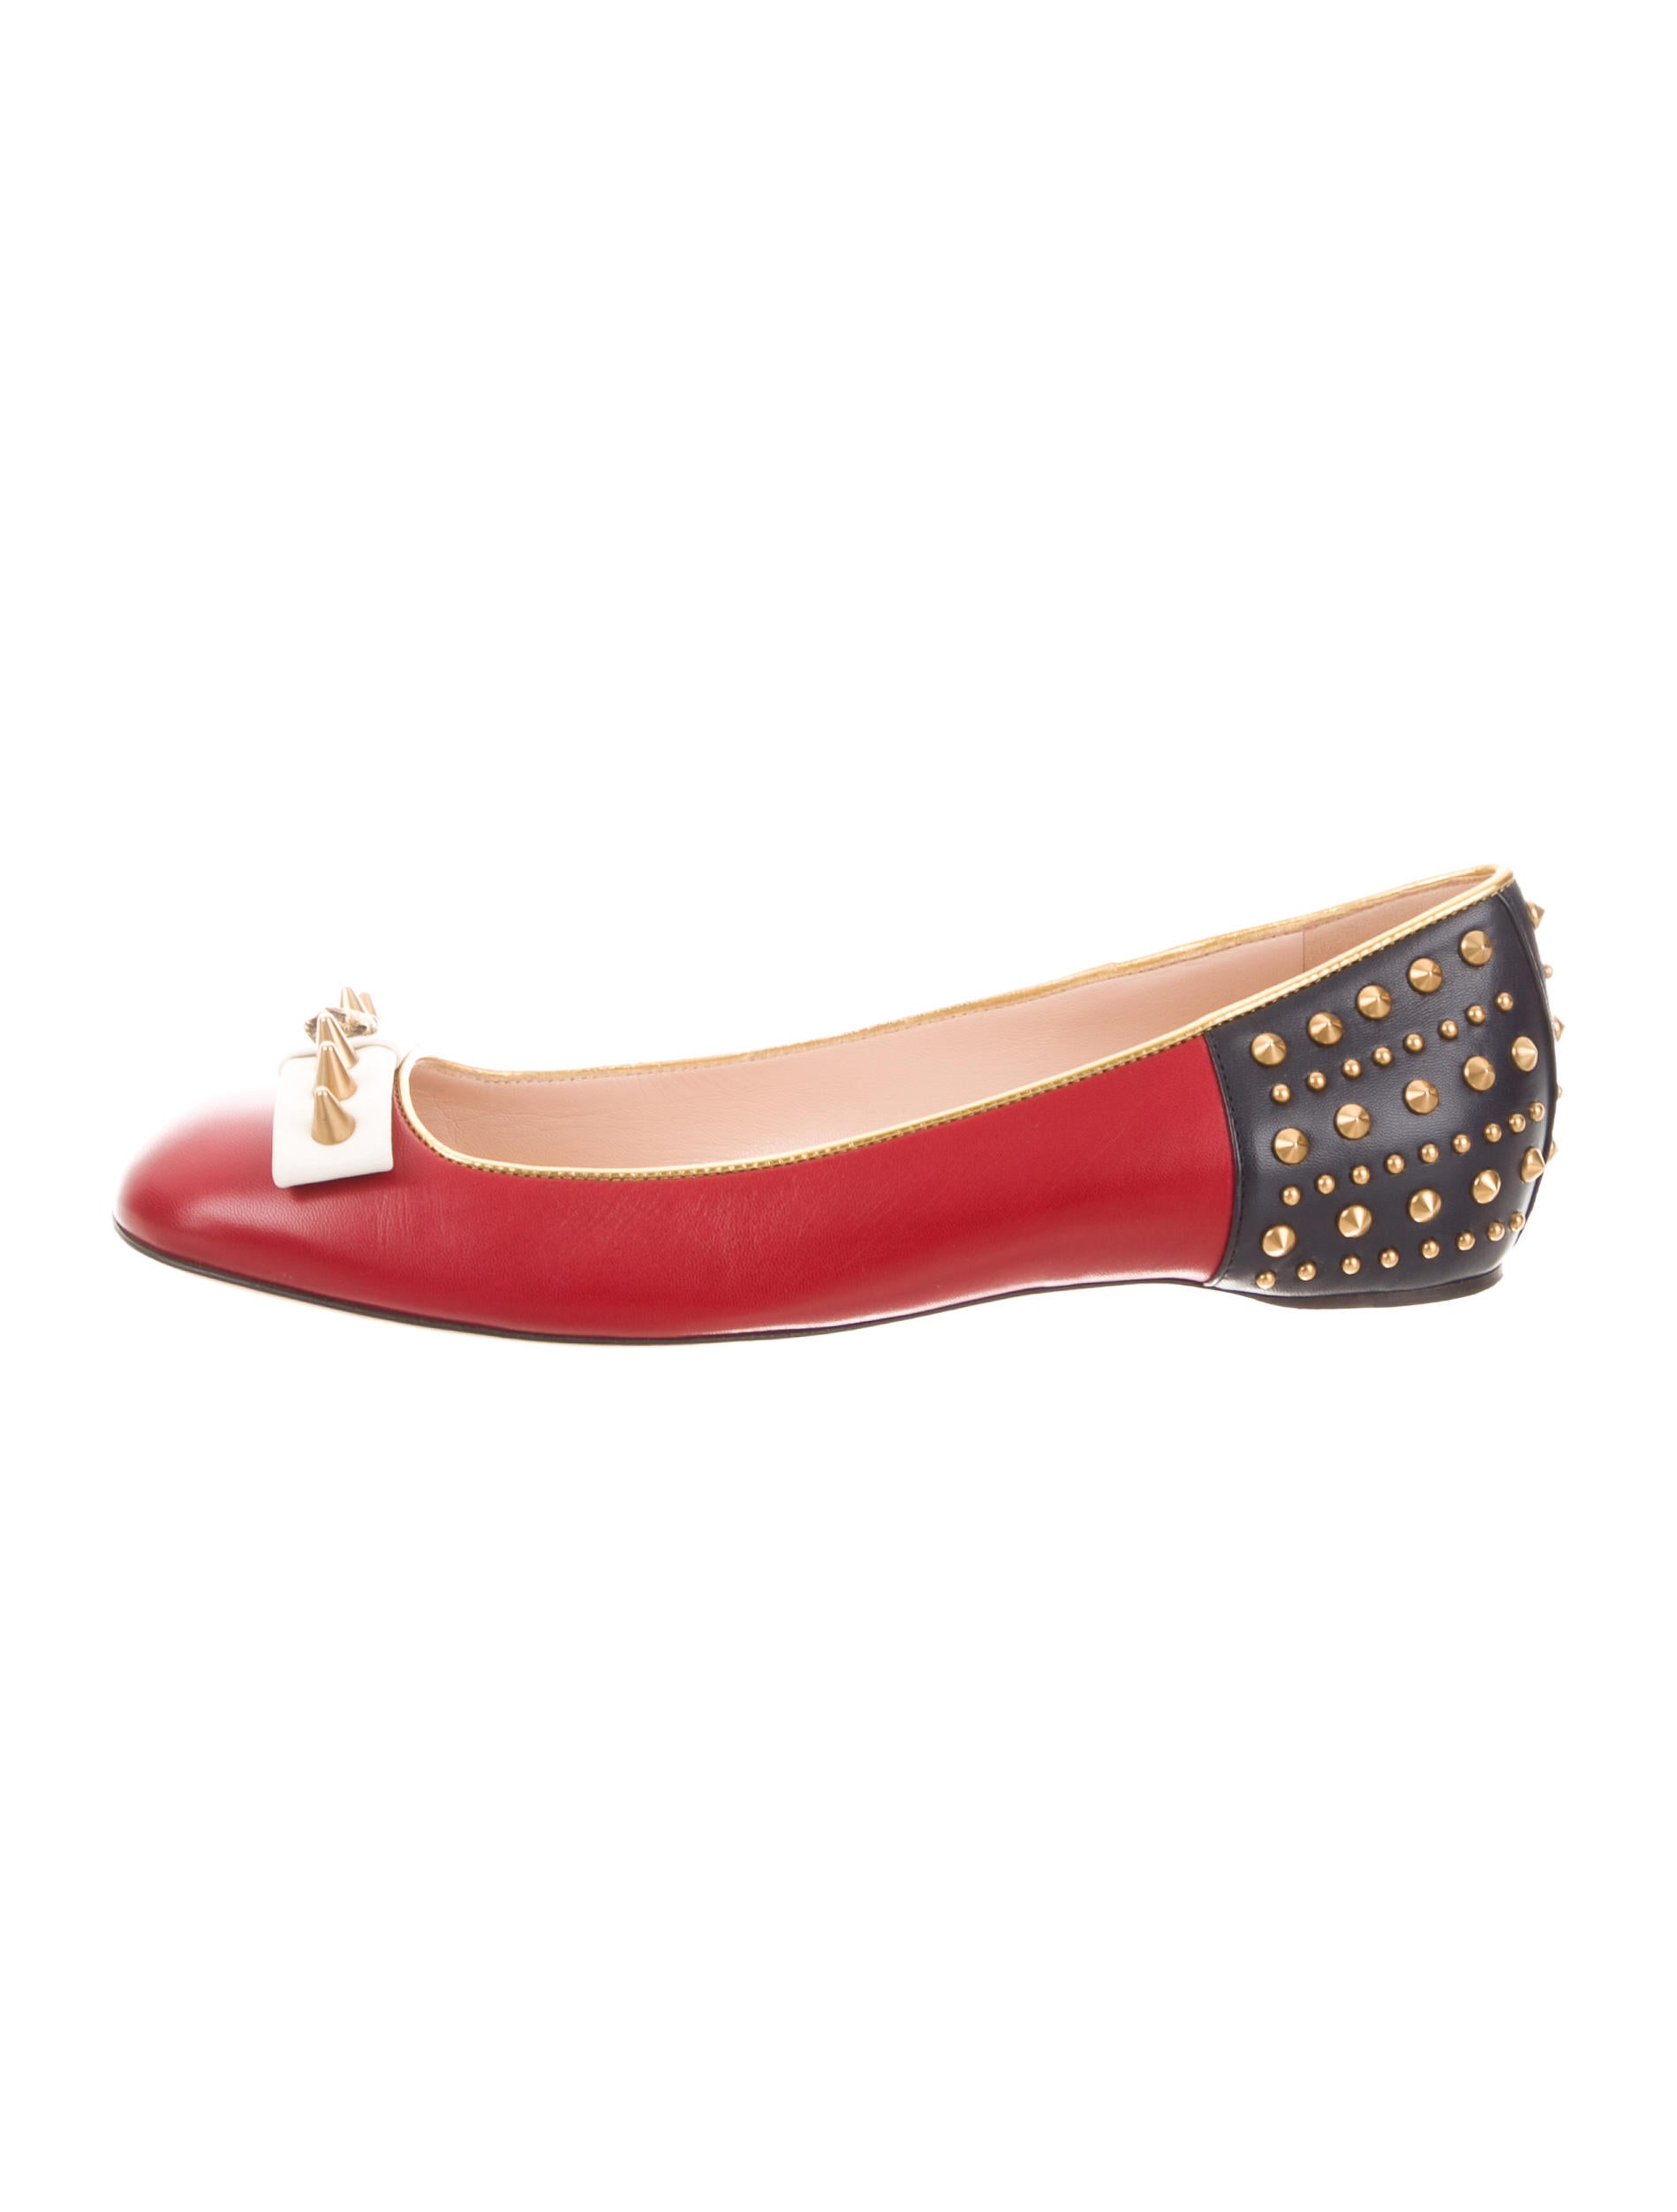 e7942c46d Gucci 2016 Lexi Studded Flats w/ Tags - Shoes - GUC235347   The RealReal